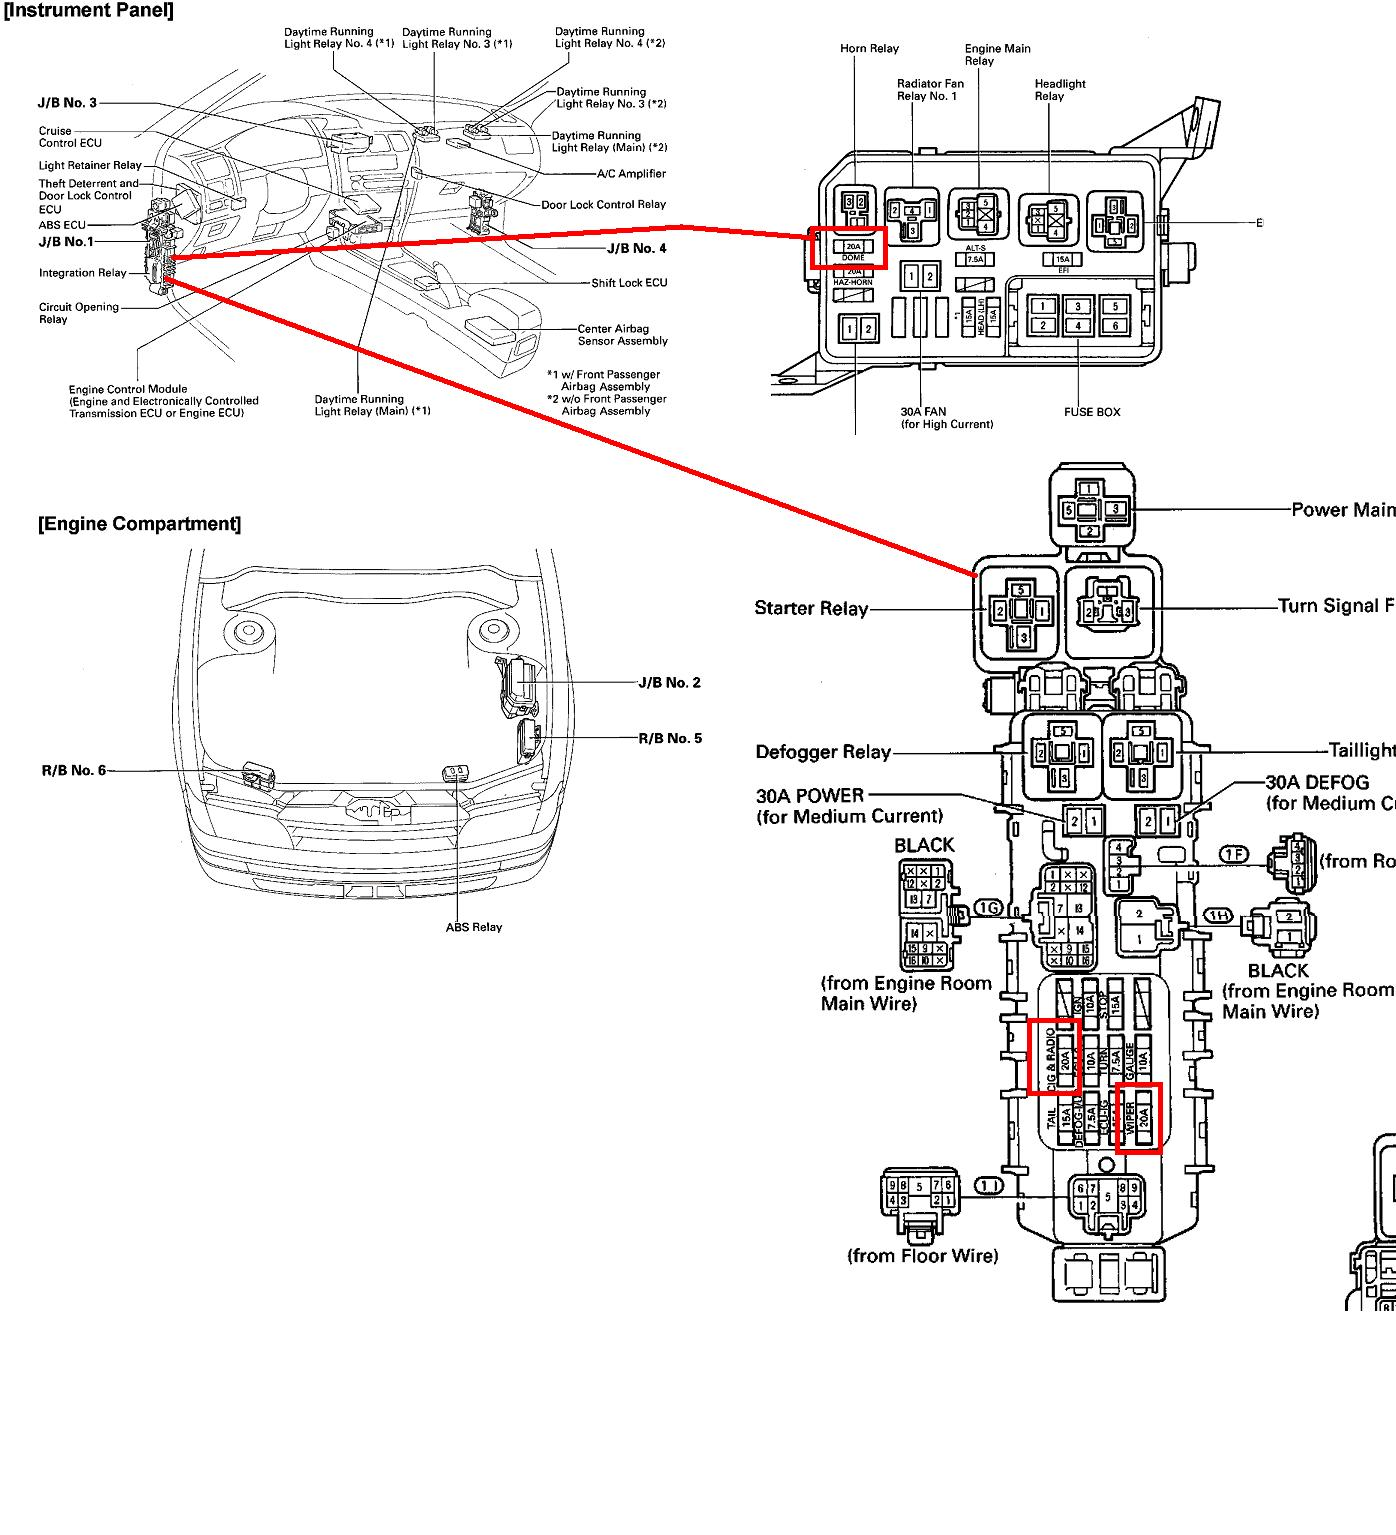 93 Toyotum Corolla Fuse Box Diagram - Wiring Diagram Networks